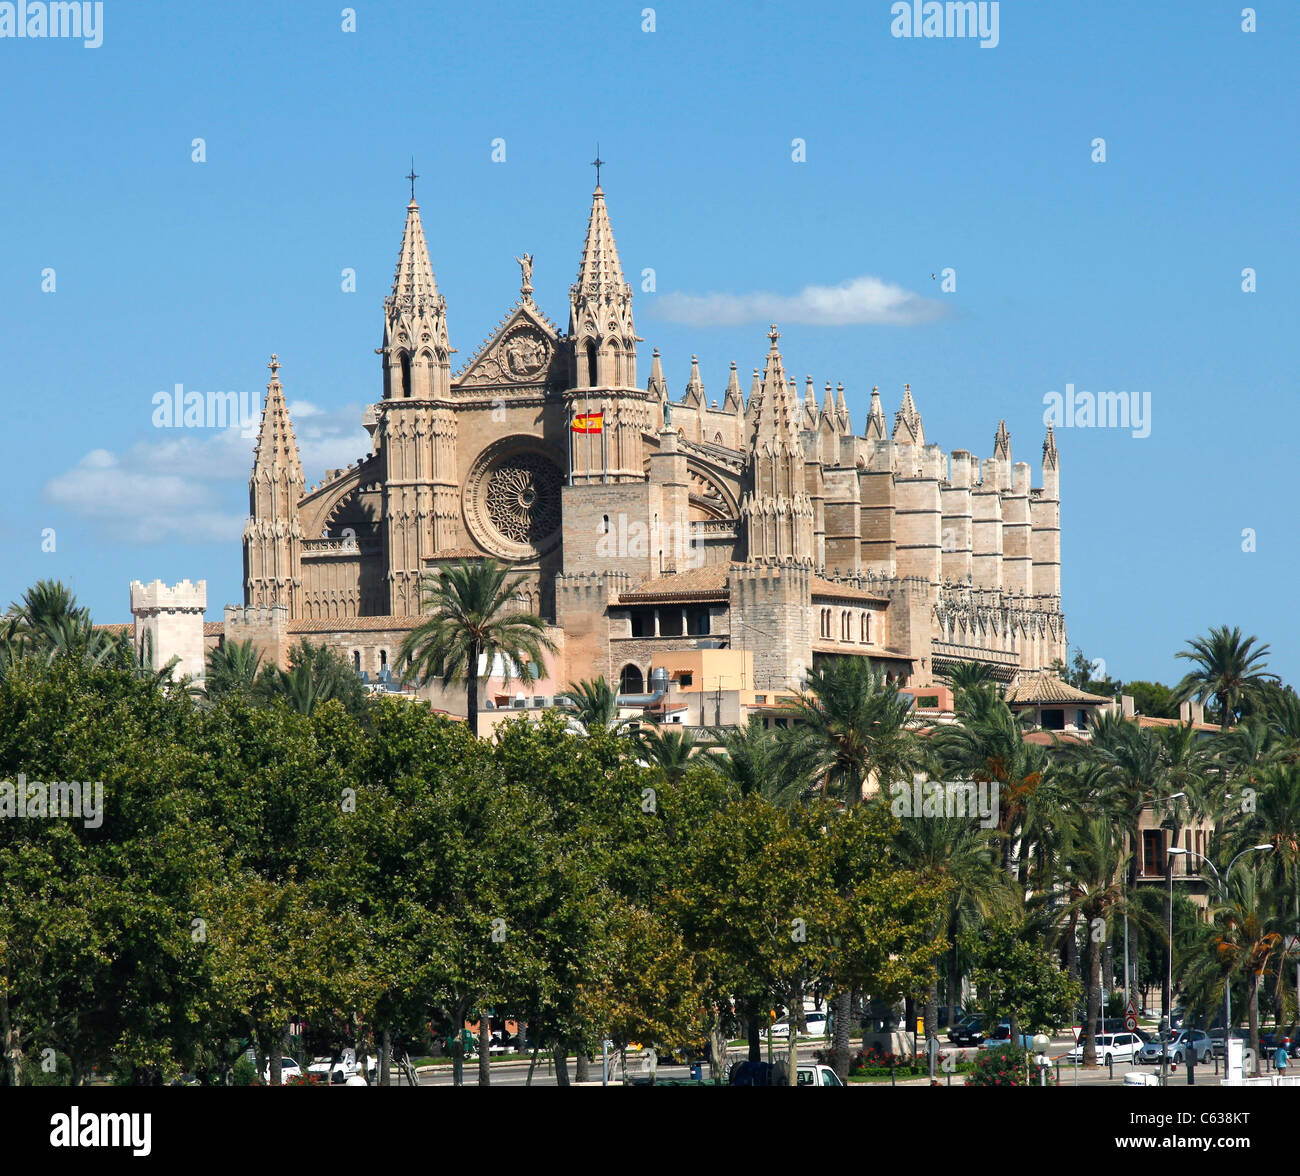 The Cathedral at Palma, in Majorca Spain - Stock Image